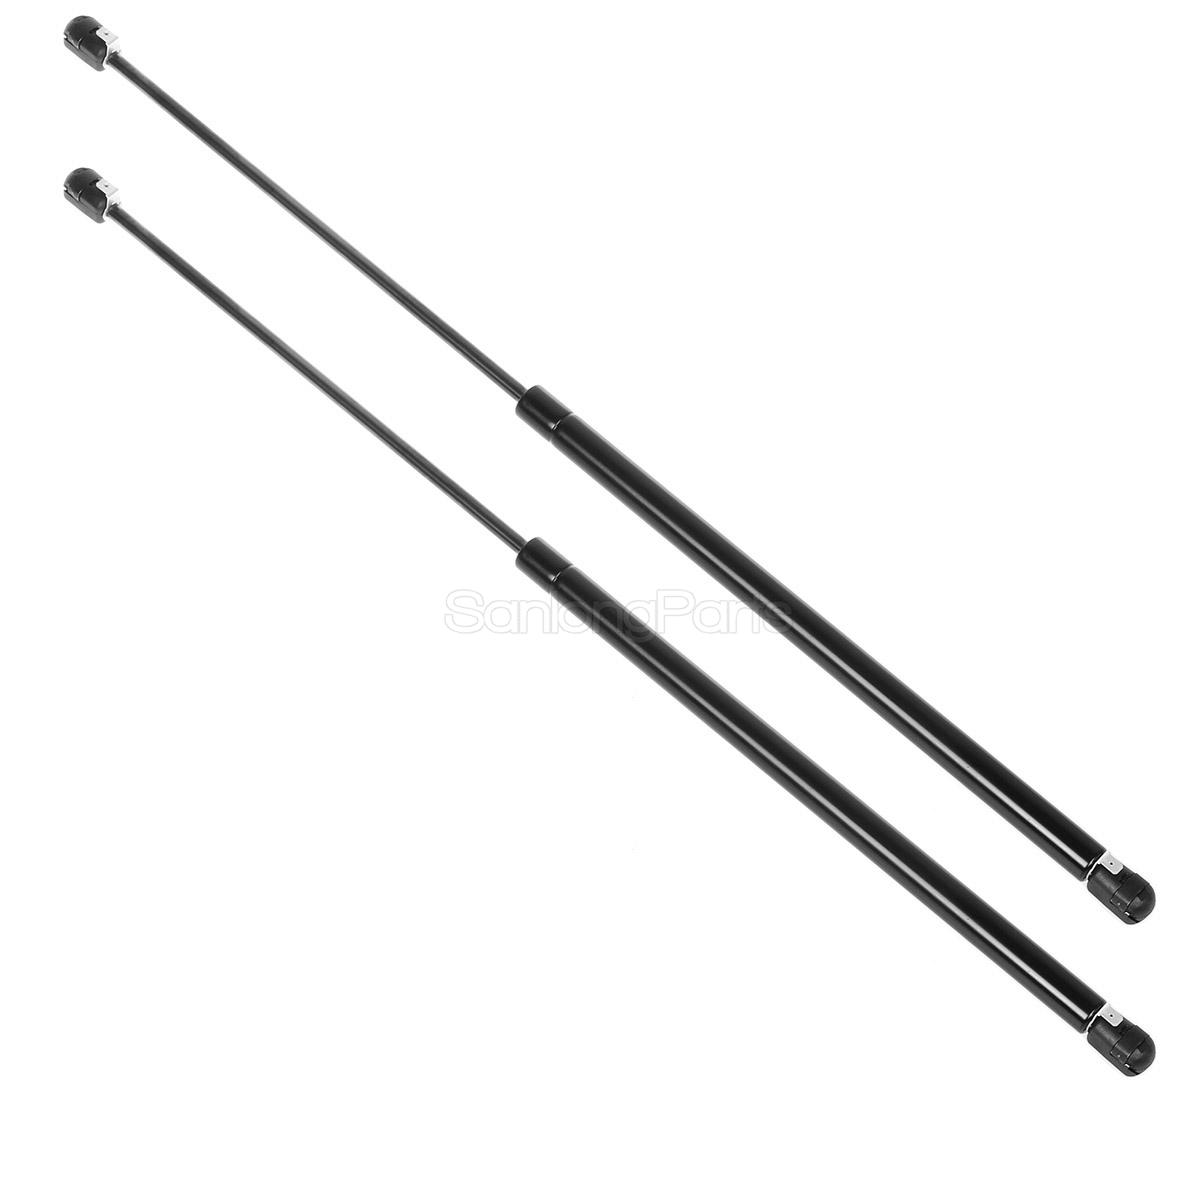 2pcs Rear Window Glass Gas Charged Lift Support For